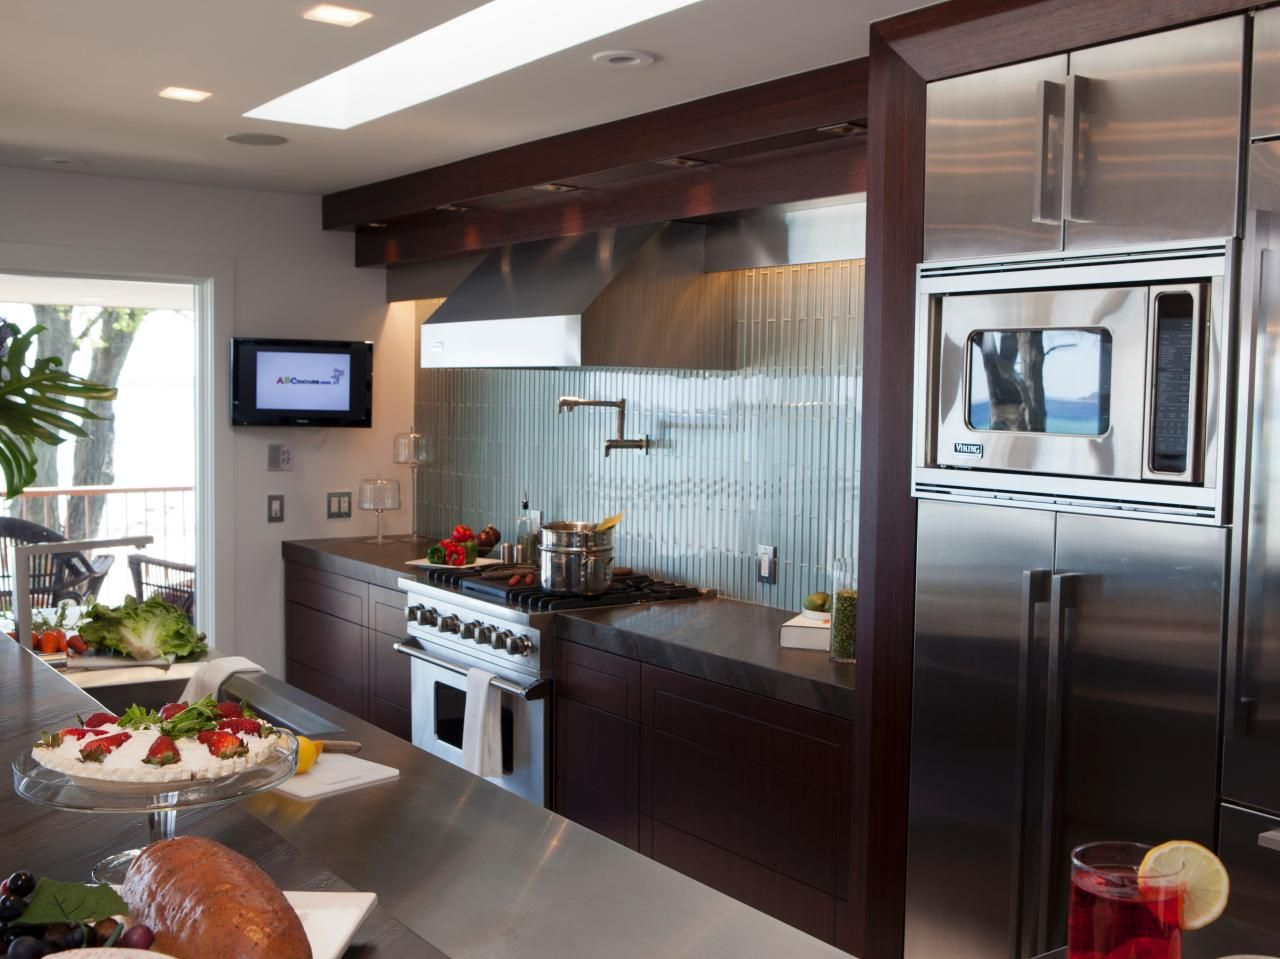 The dark-stained wood cabinets are a nice contrast to the stainless ...